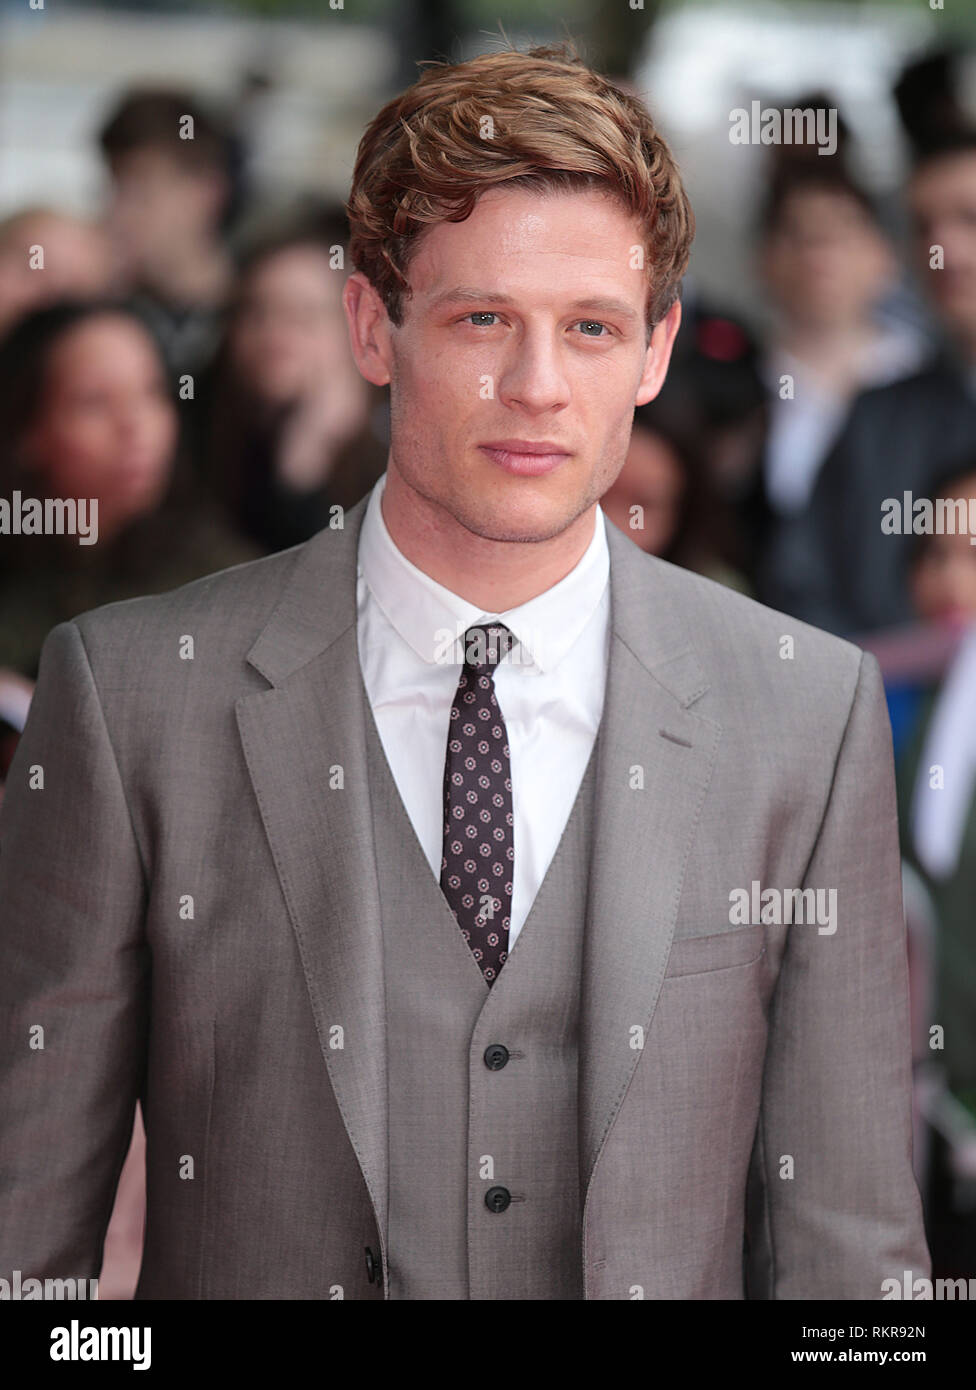 London, UK, 5th June 2014 James Norton attends the 'Belle' UK Premiere at BFI Southbank - Stock Image